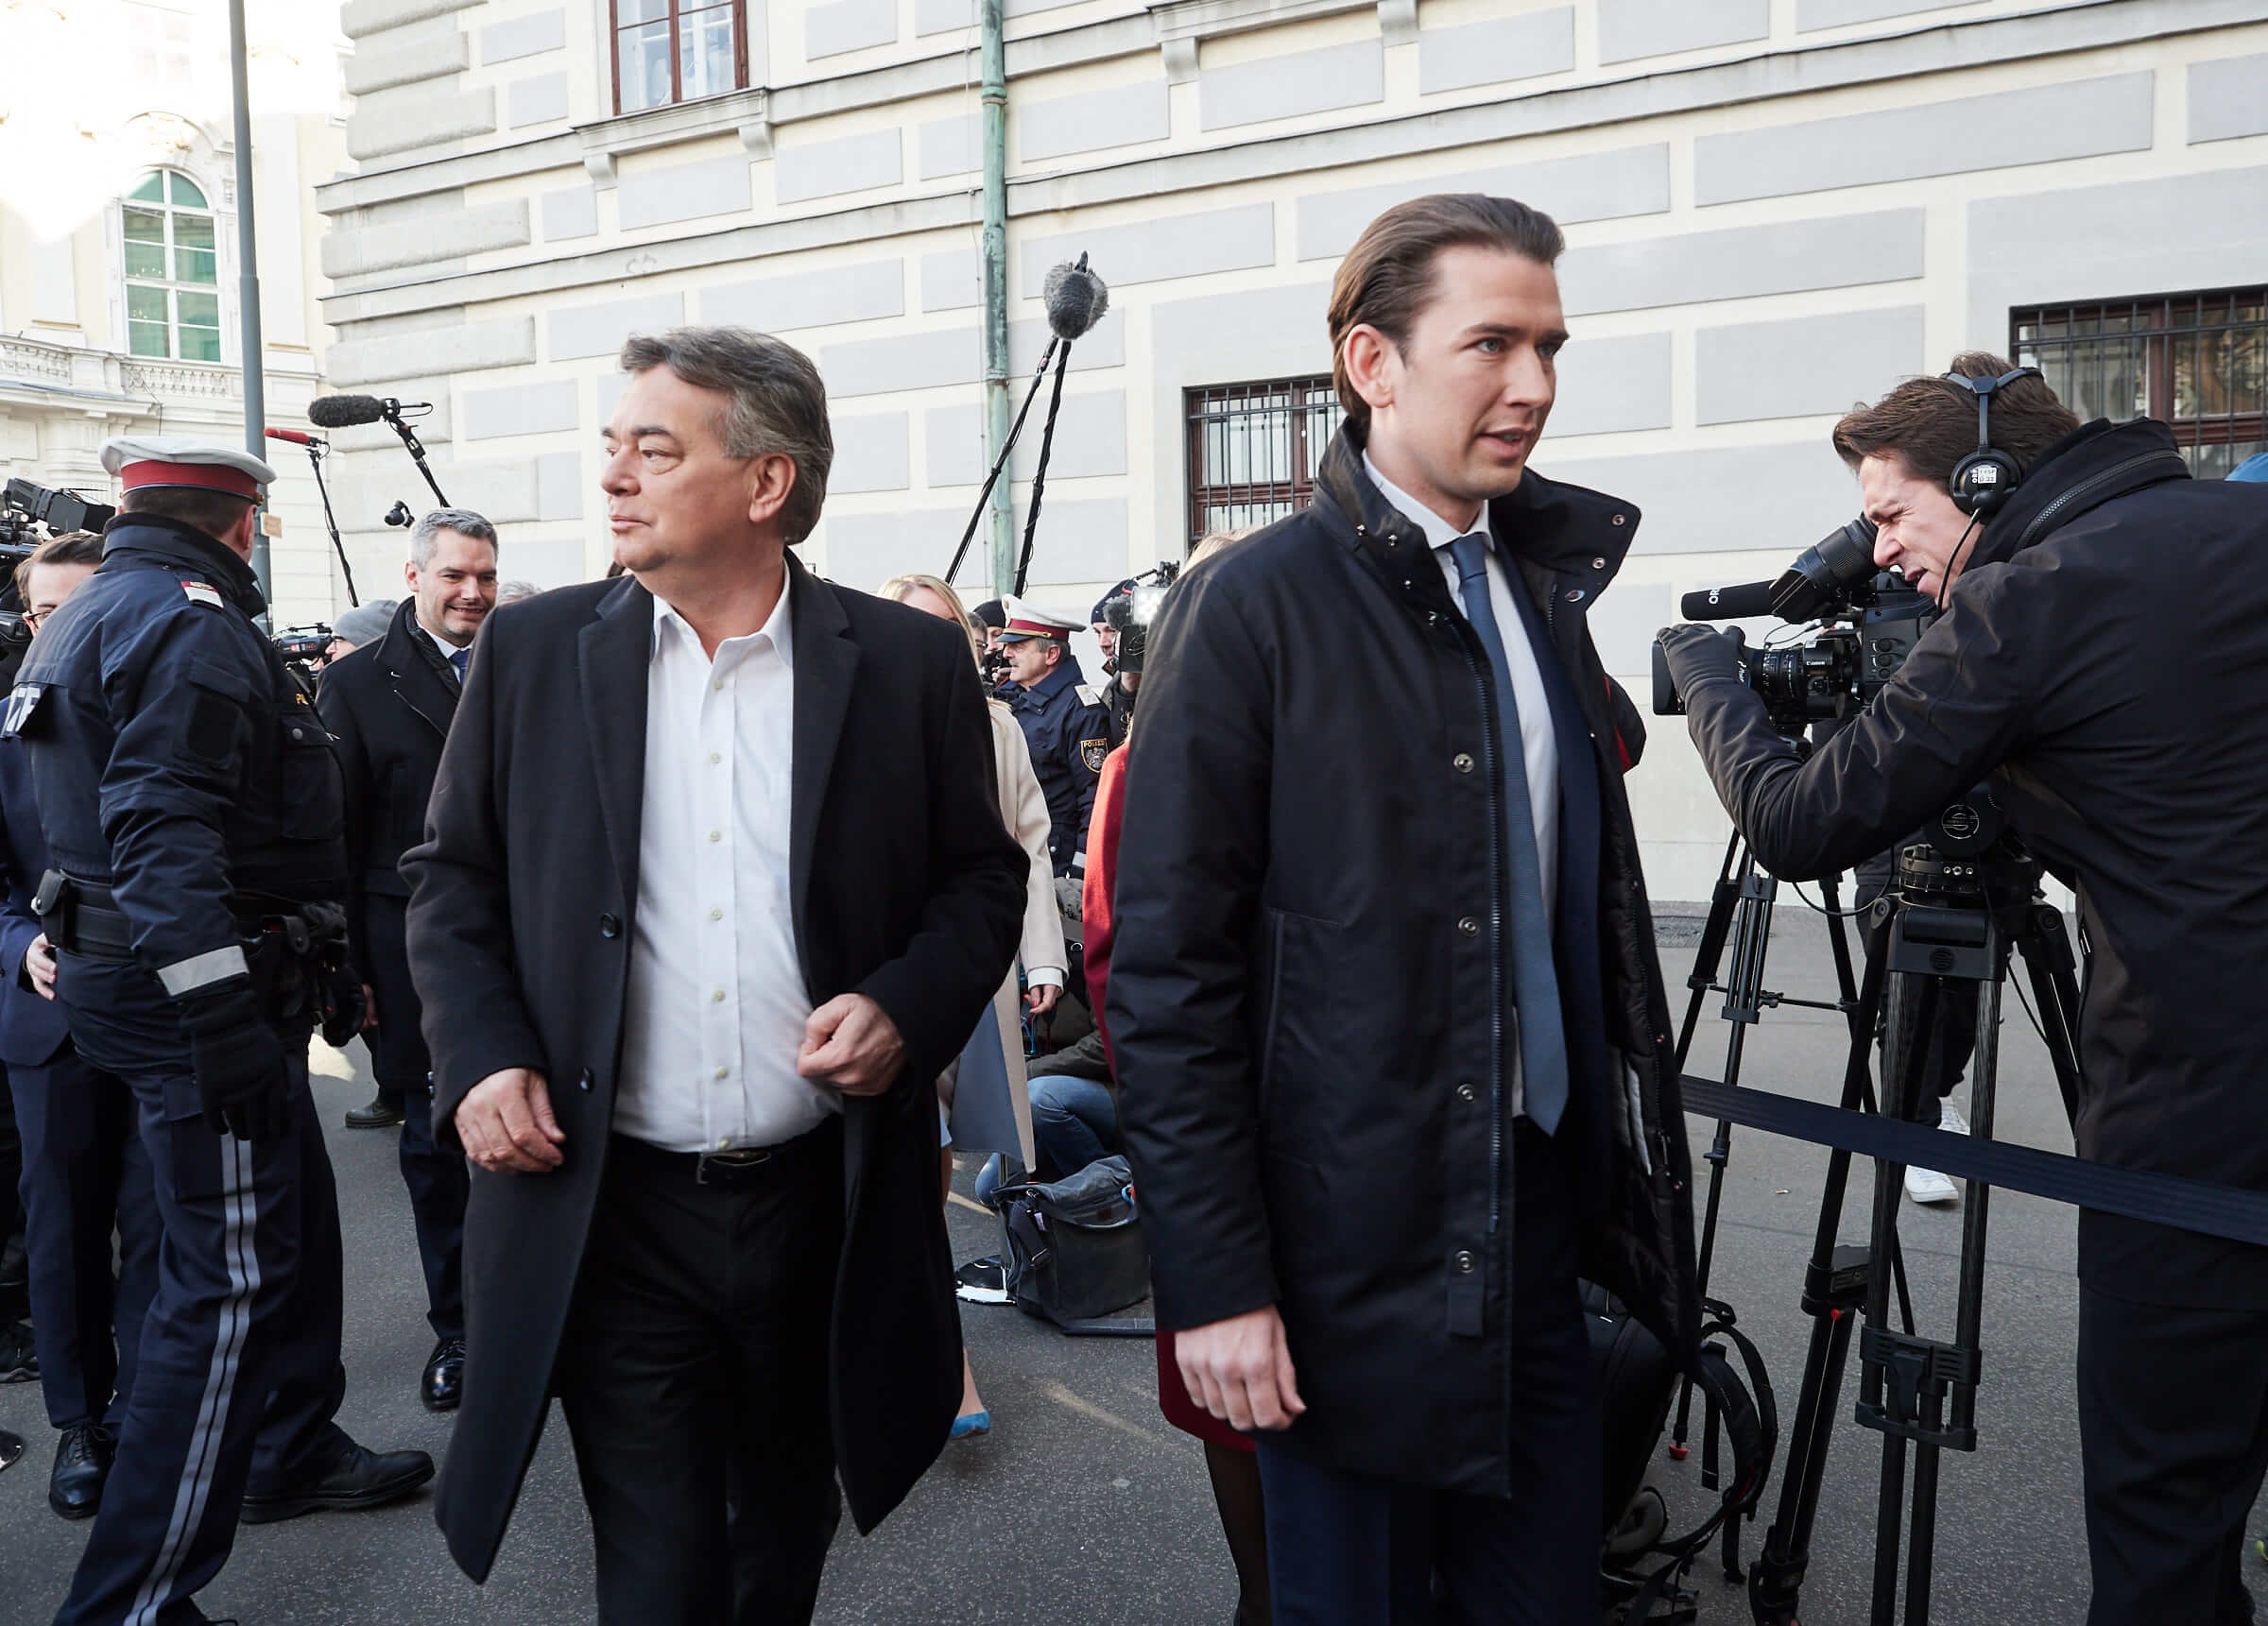 Werner Kogler (spokesman Green Party) and chancellor Sebastian Kurz (ÖVP) on their way to the inauguration ceremony. © Michael Gubi/Flickr